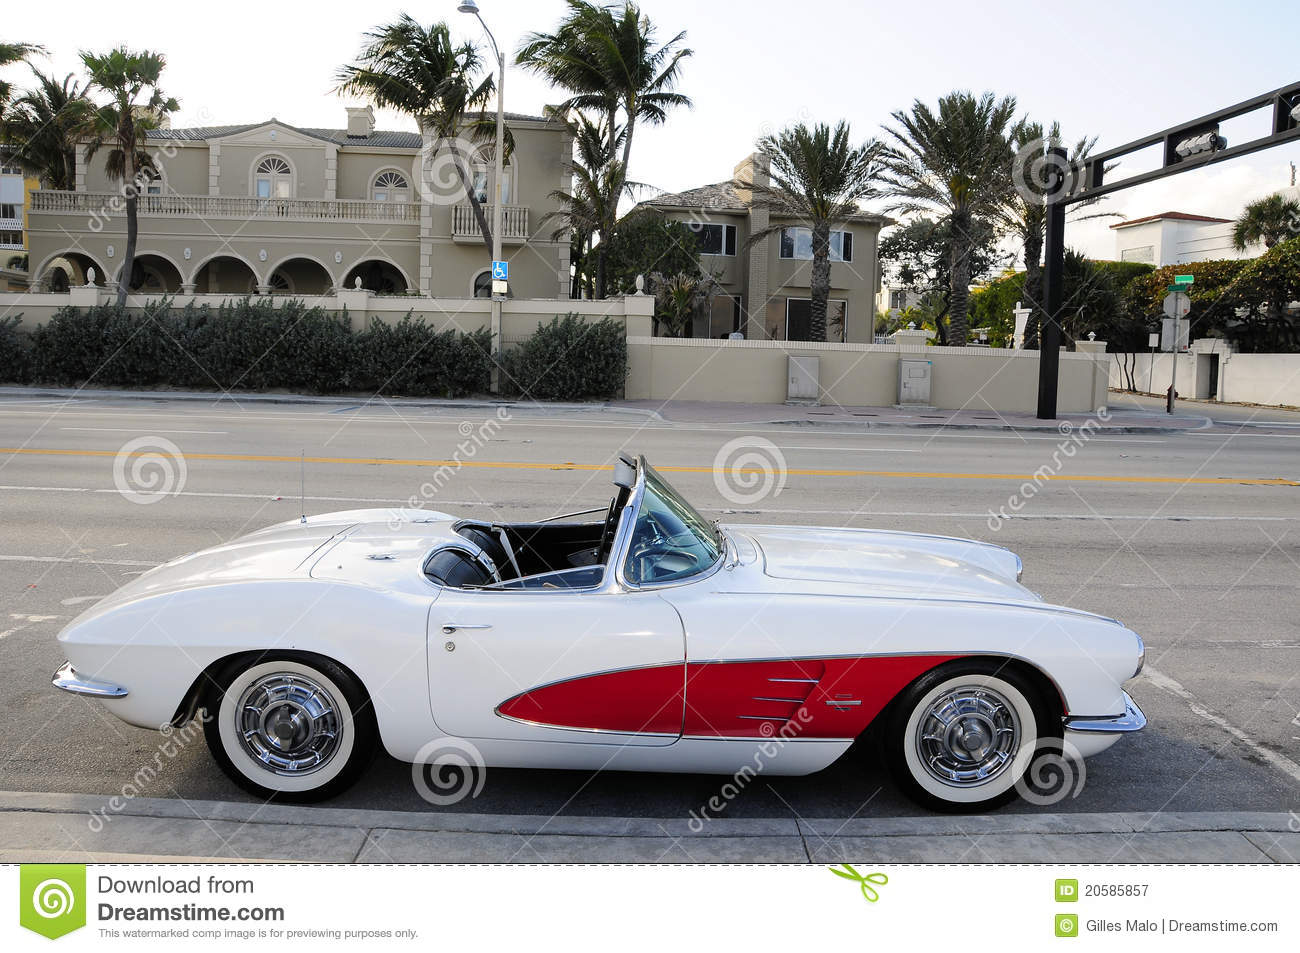 Antique Sports Car Royalty Free Stock Photography  Image: 20585857